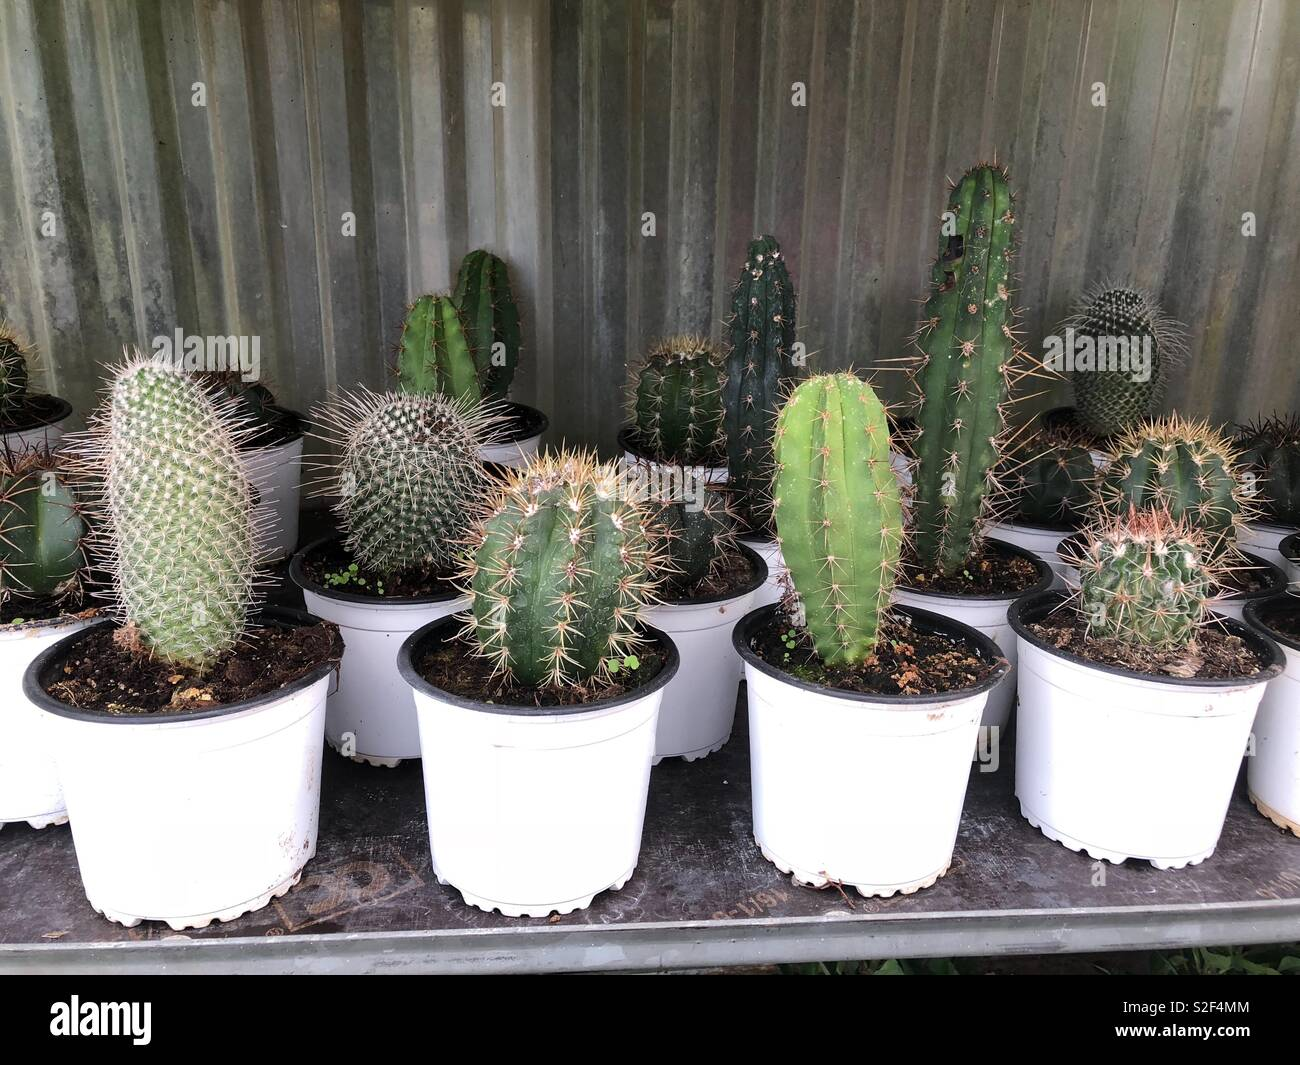 c42930dc2 Little Cactus Imágenes De Stock & Little Cactus Fotos De Stock - Alamy